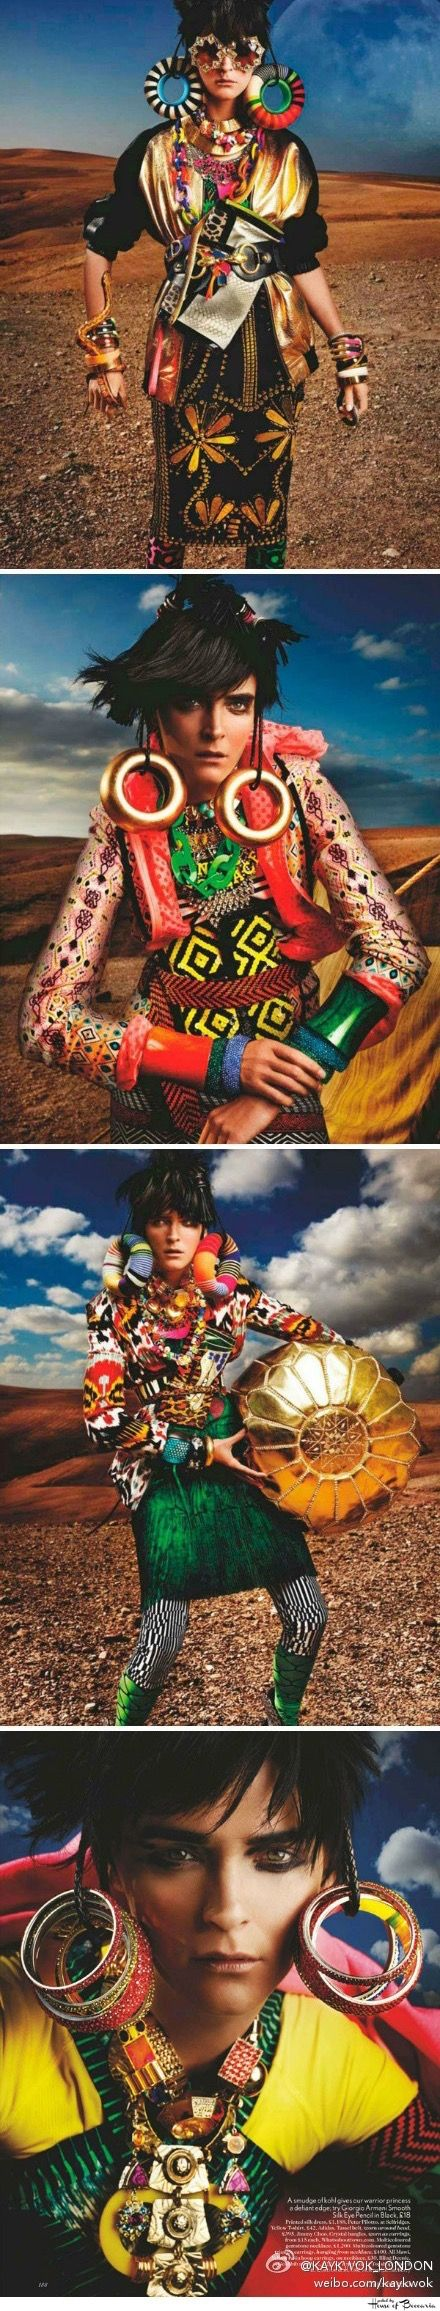 """~Vouge UK May 2012 """"High Plains Drifter"""" - Model Carmen Kass - Photo by Mario Testino - Styled by Lucinda Chambe 